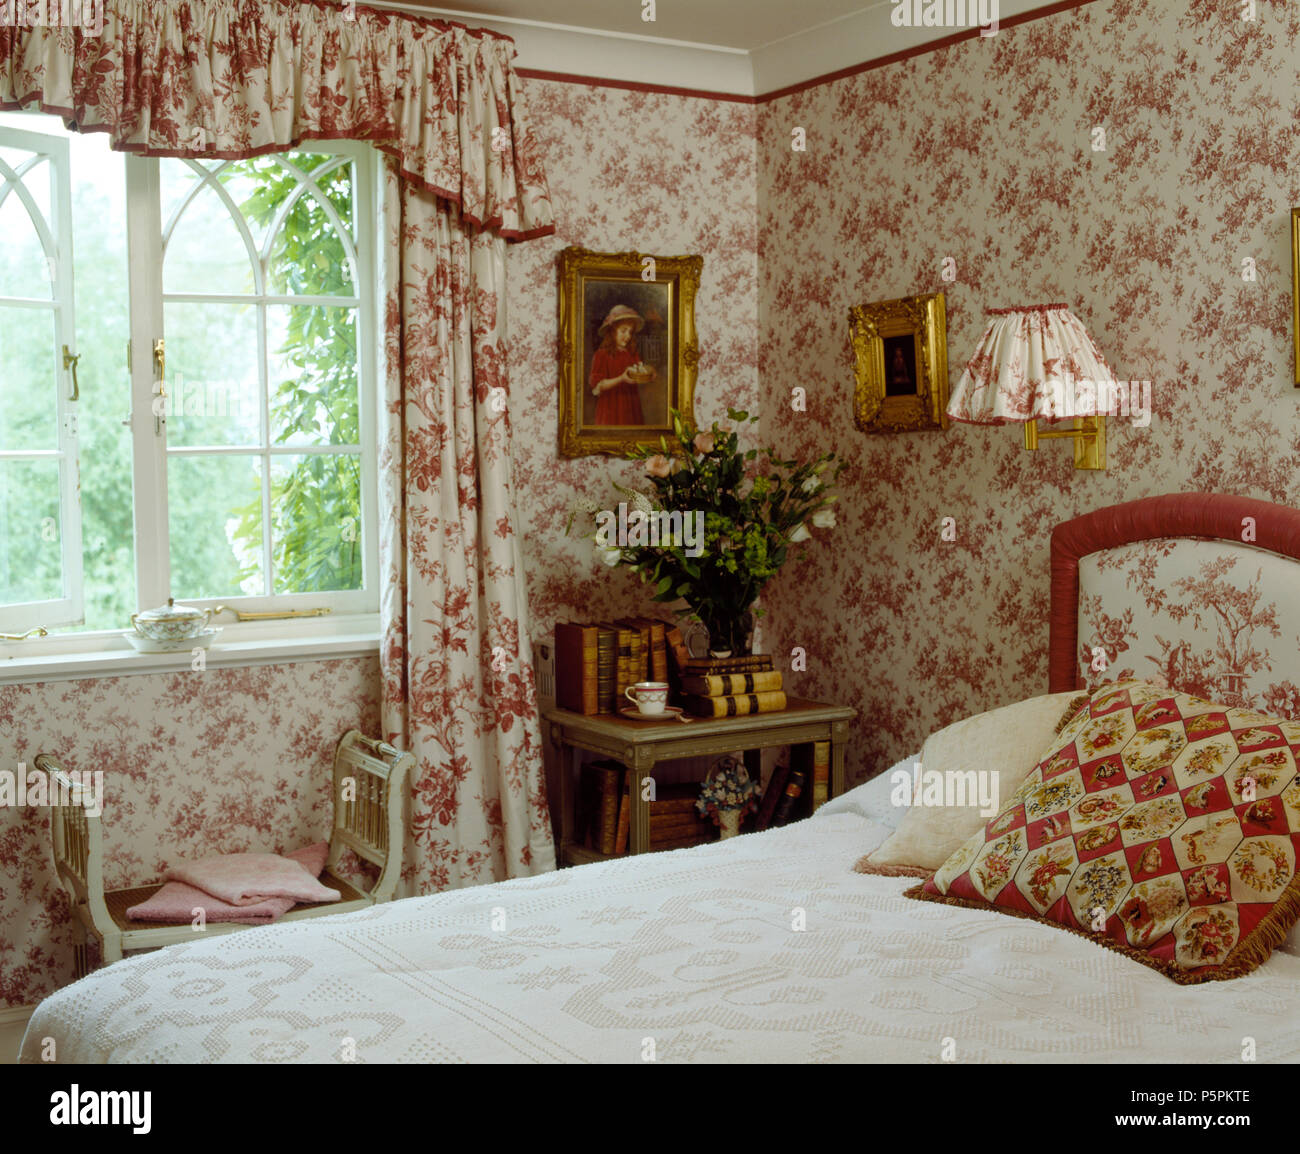 Co Ordinating Floral Wallpaper And Curtains In Country Bedroom With